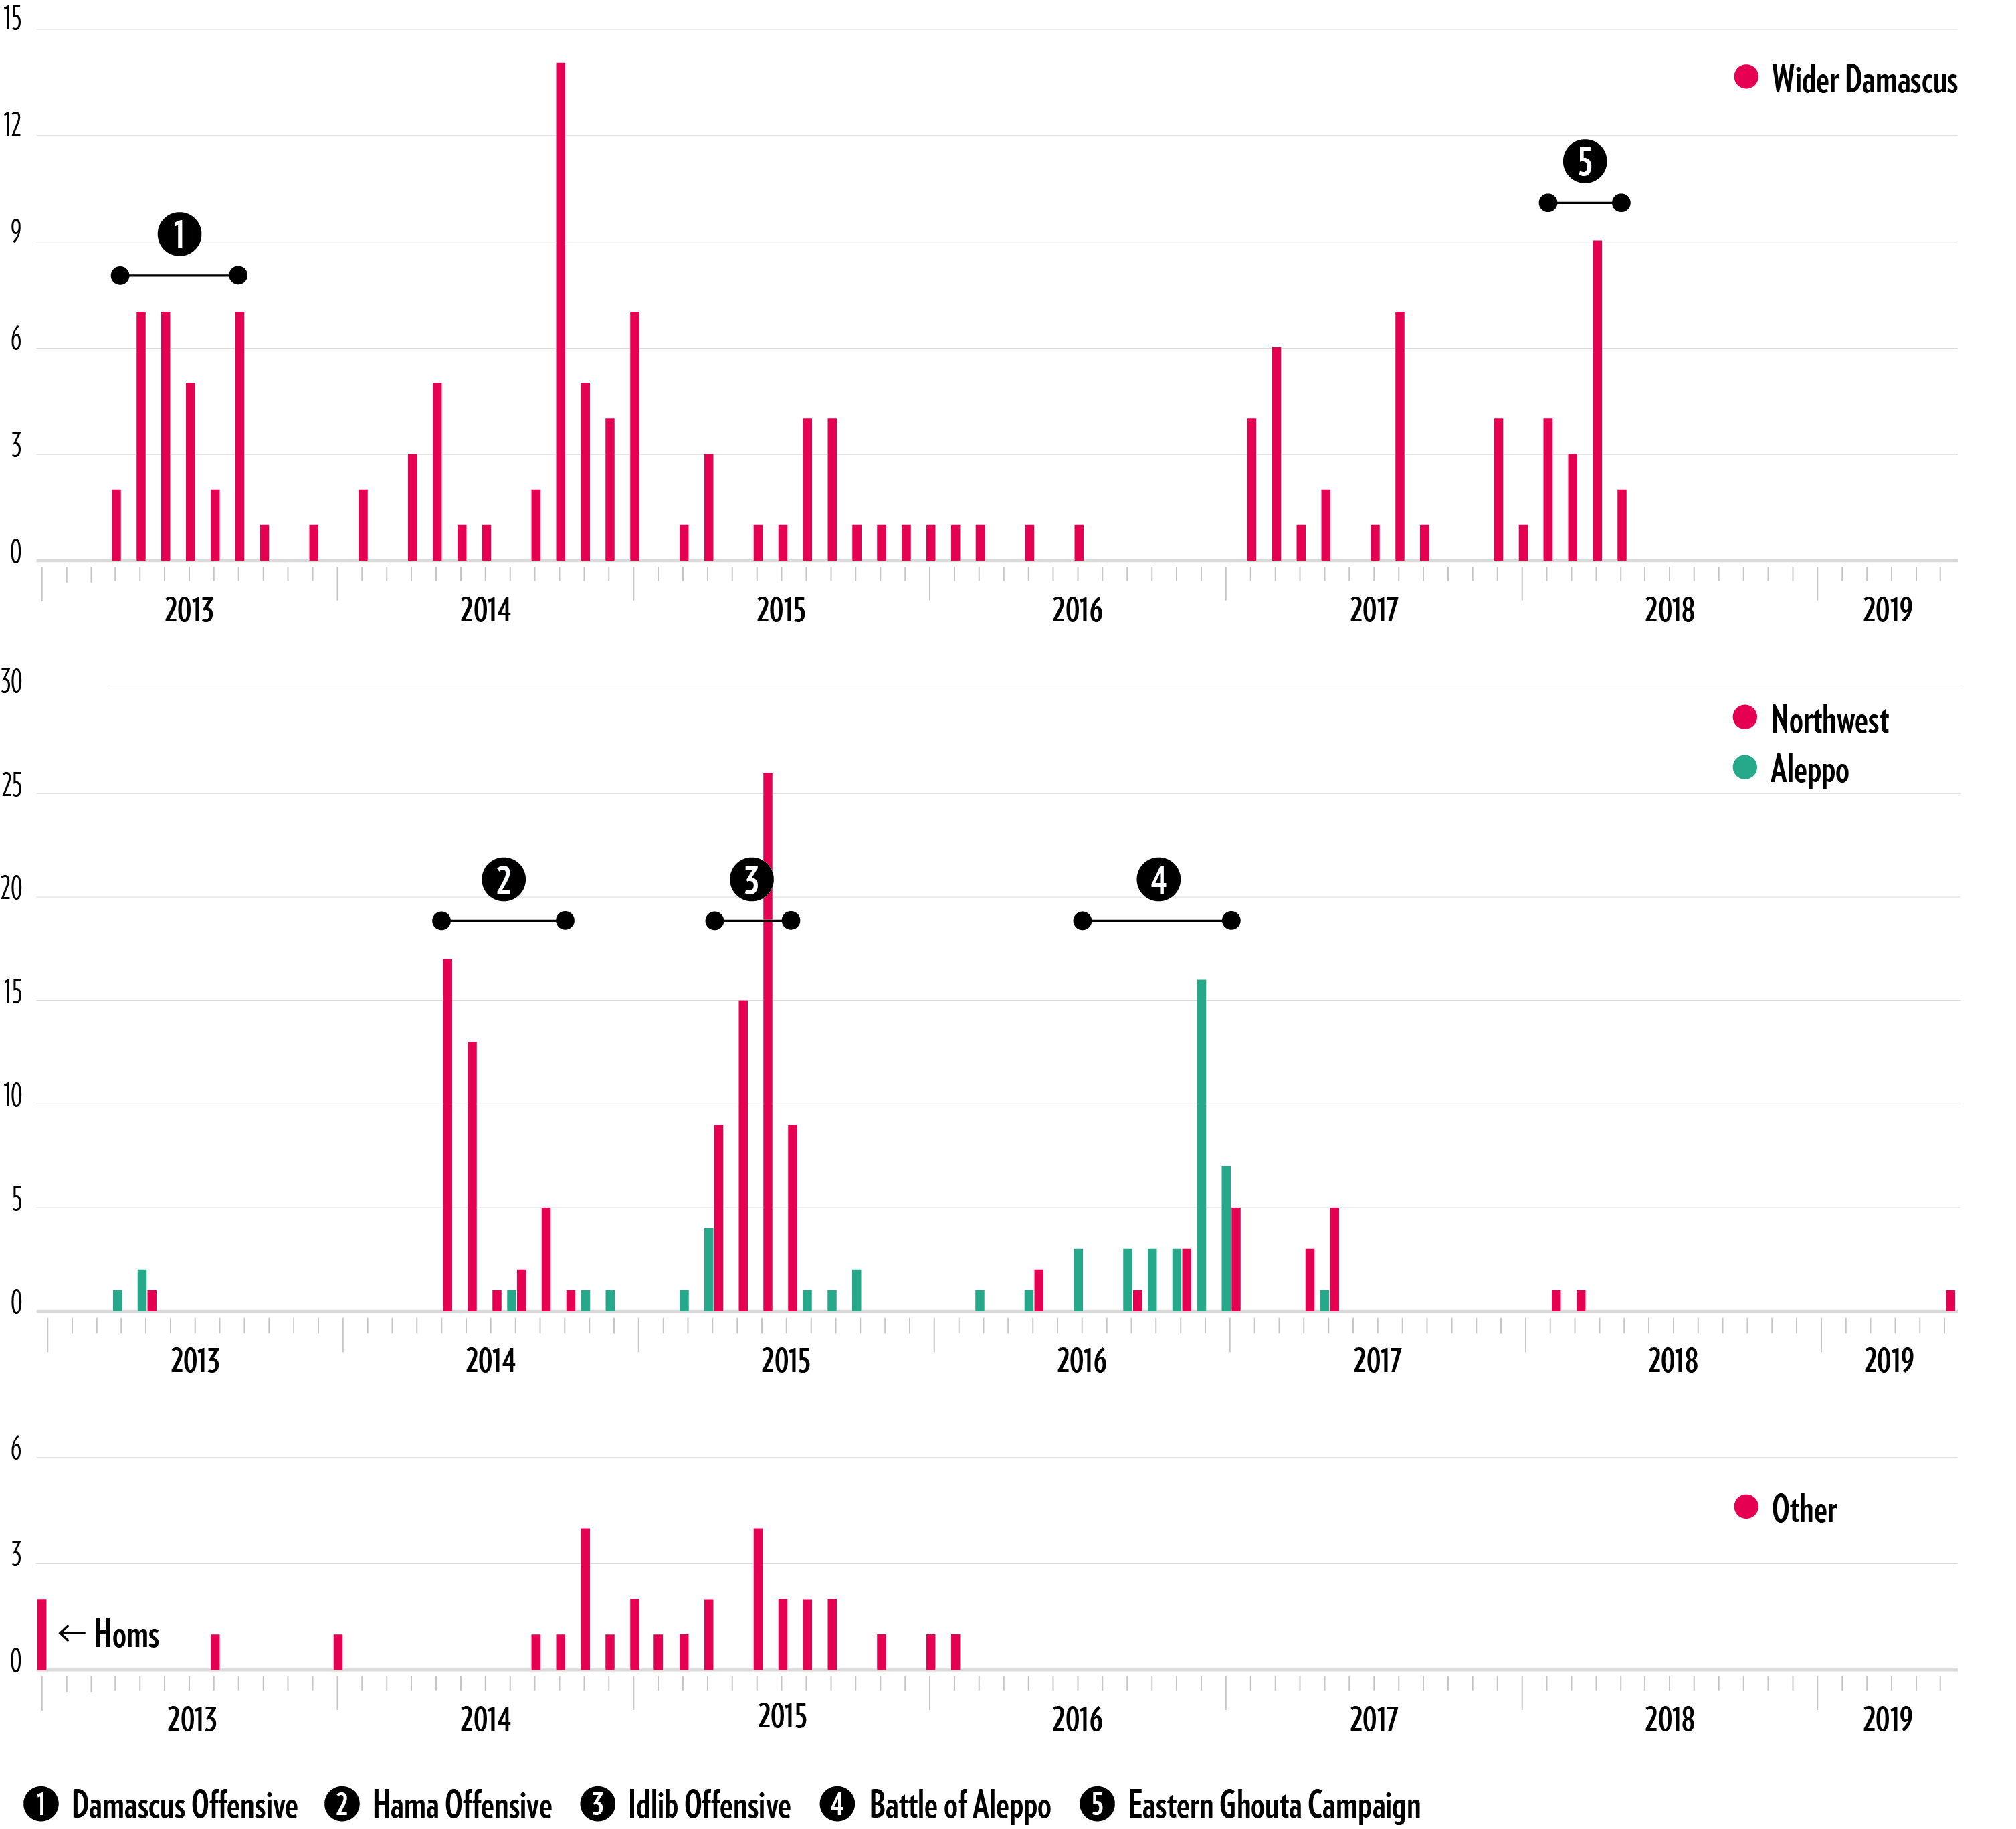 Confirmed Incidents of Chemical Weapons Use Over Time (by Region)